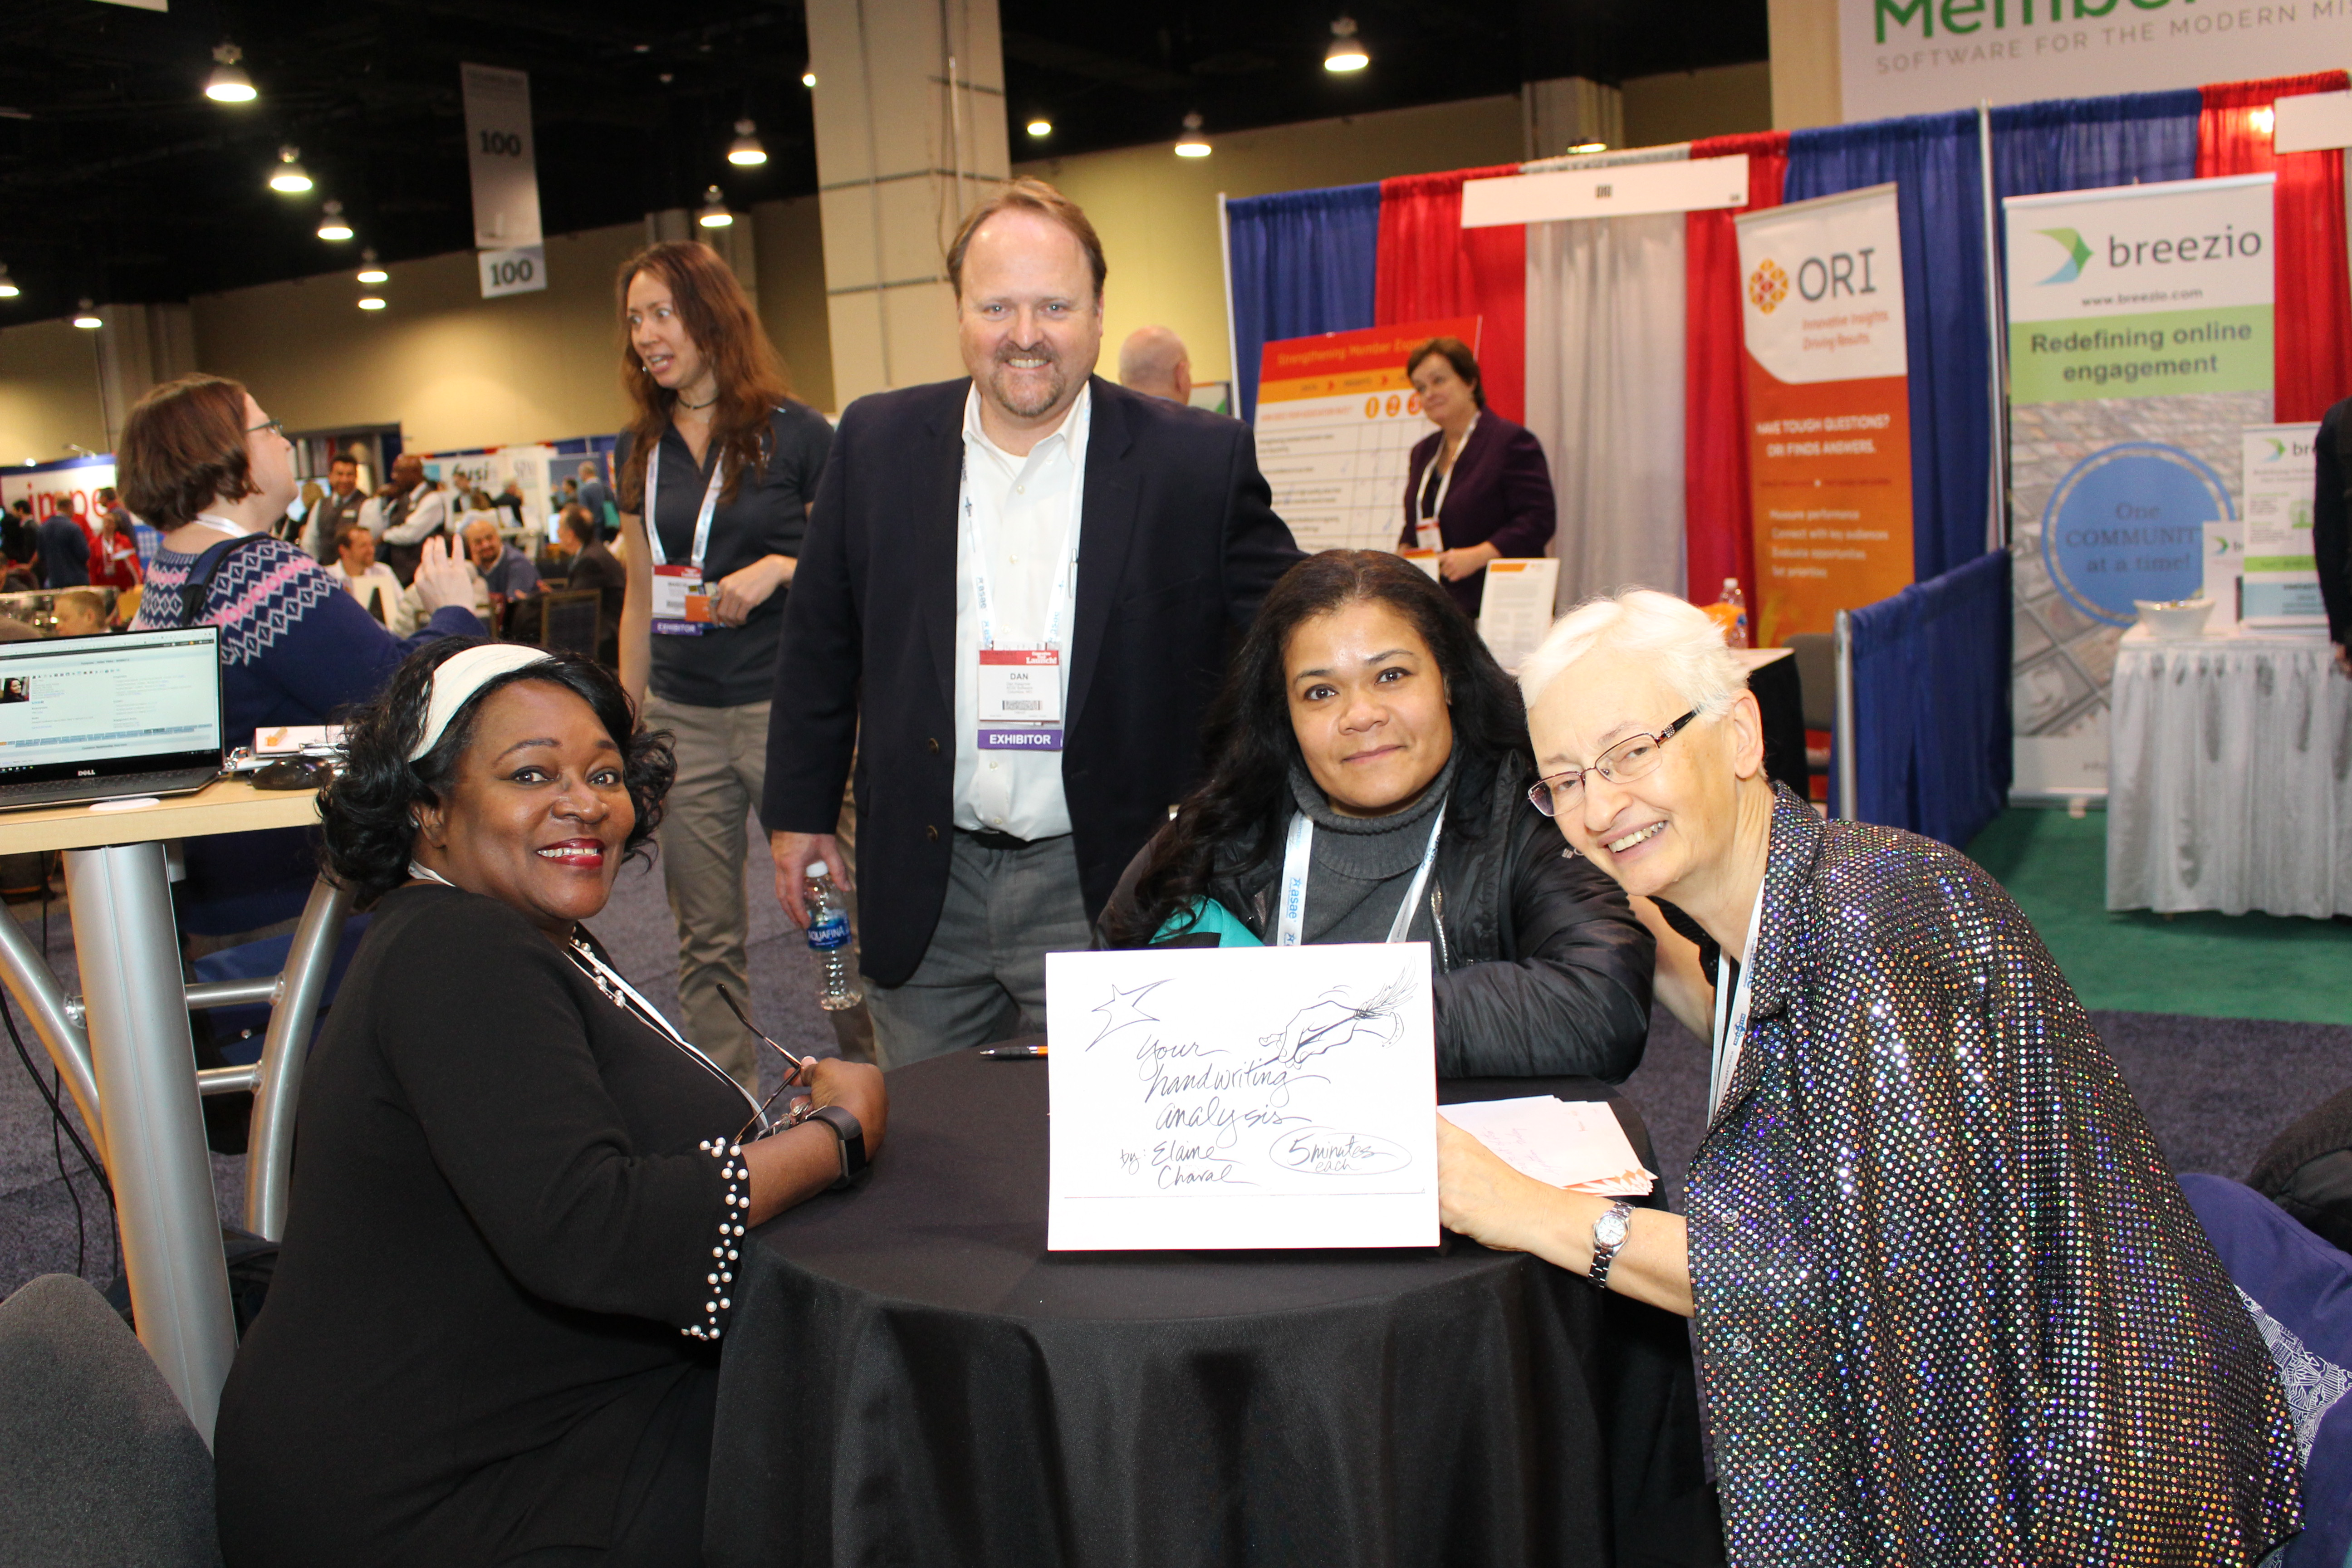 A handwriting analyst at the ASAE Technology Conference